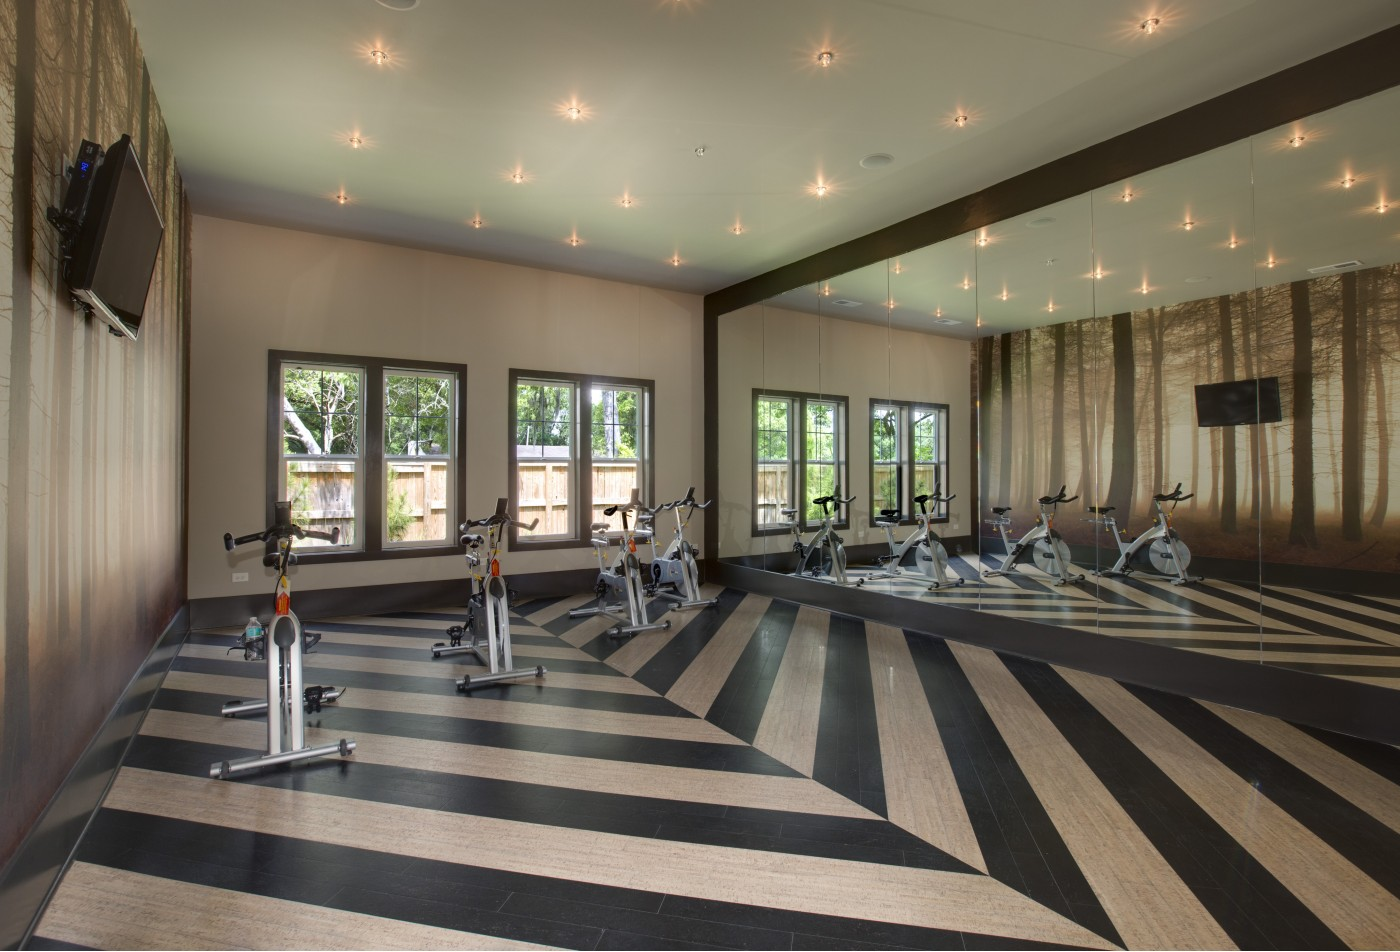 Photo of cardio exercise room with fitness bikes.